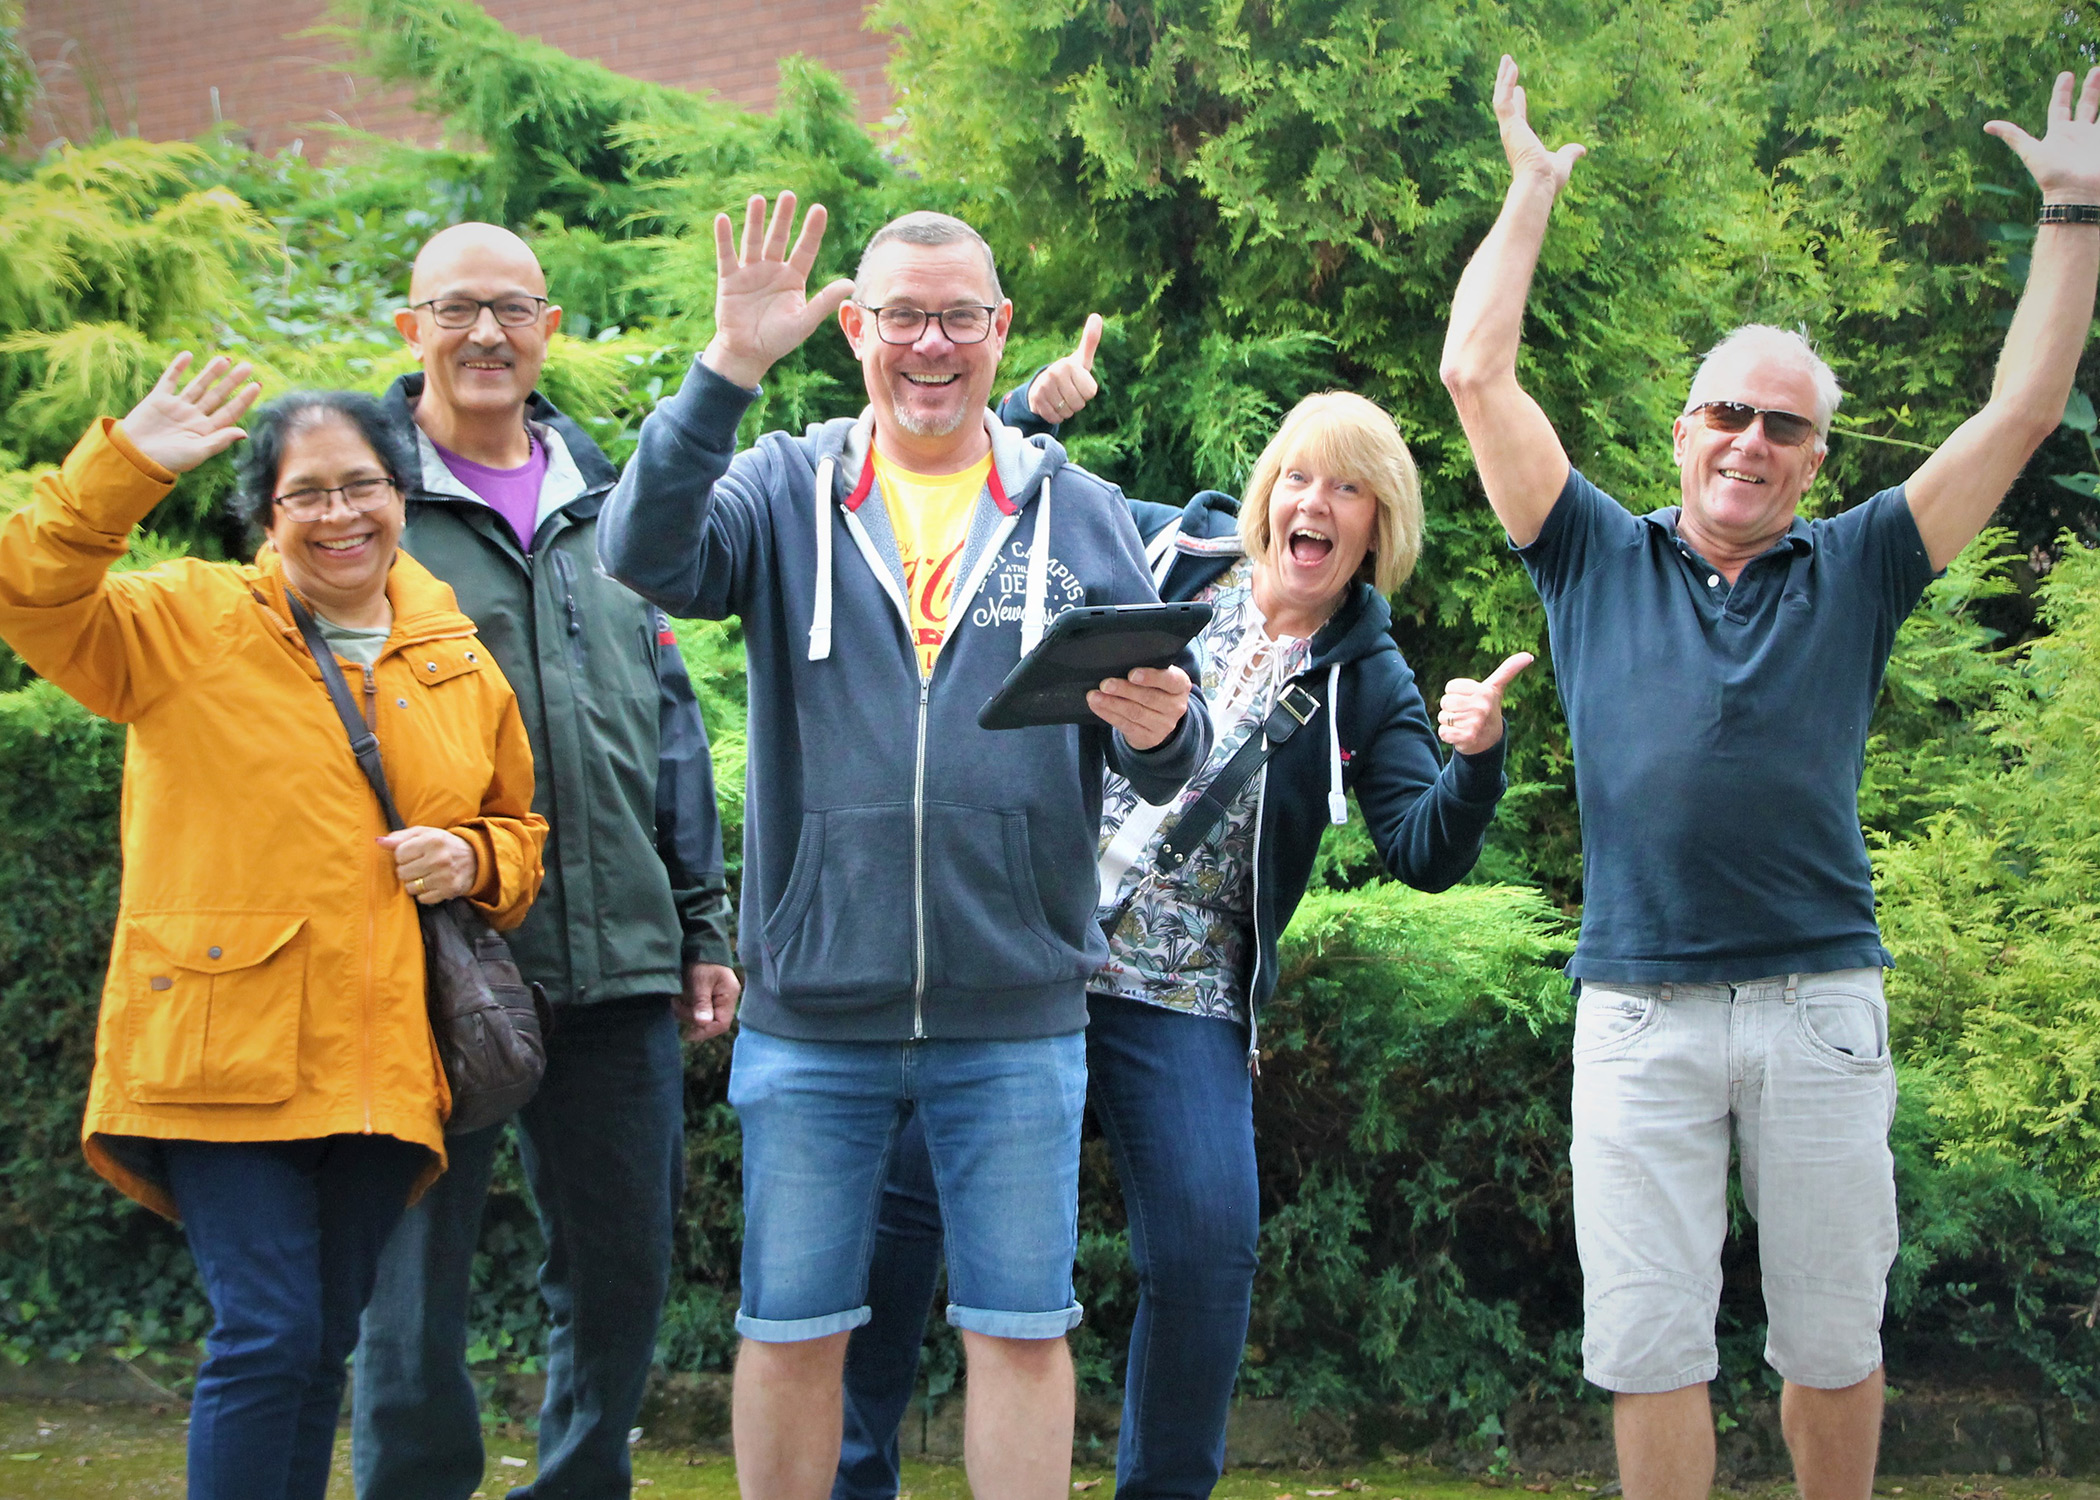 Group of people smiling and waving whislt taking part in an iPad Treasure Hunt team building event